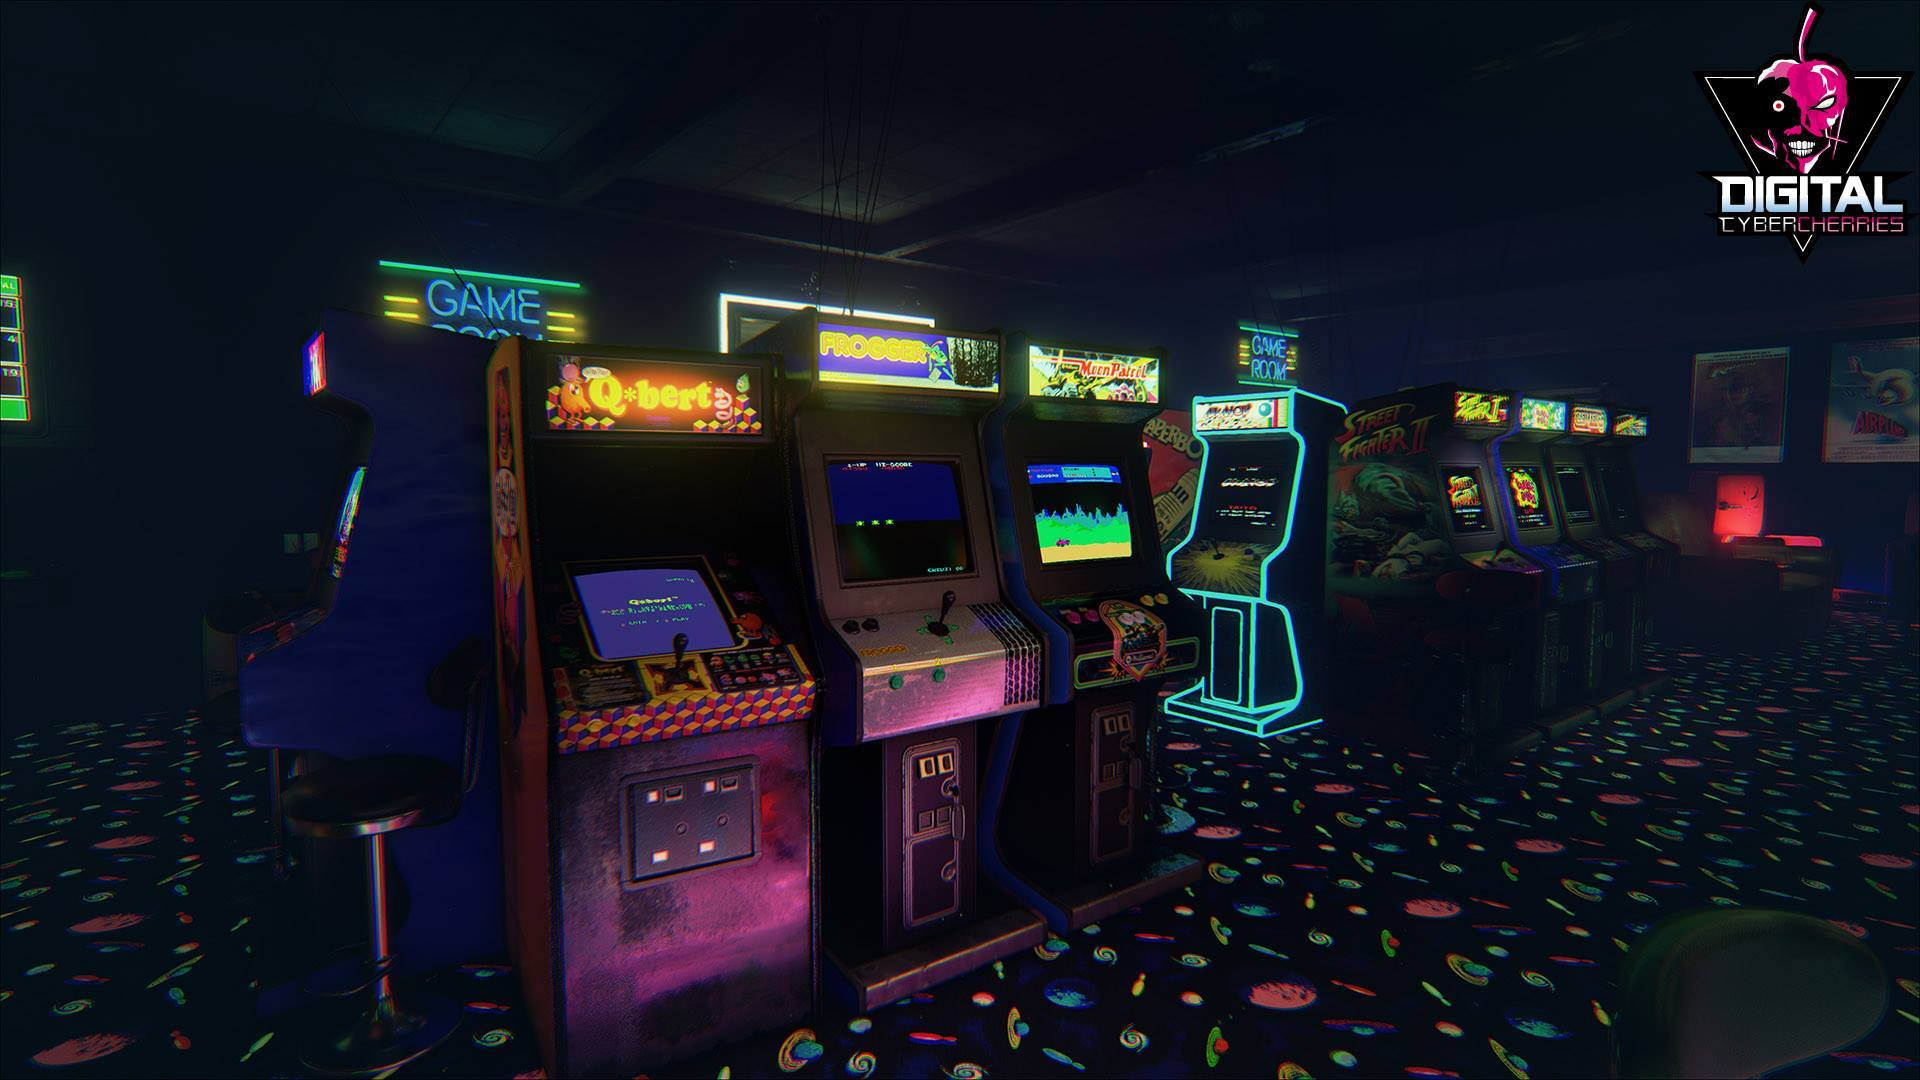 Home Design Games Like Sims New Retro Arcade Neon Will Come To Vive Shacknews